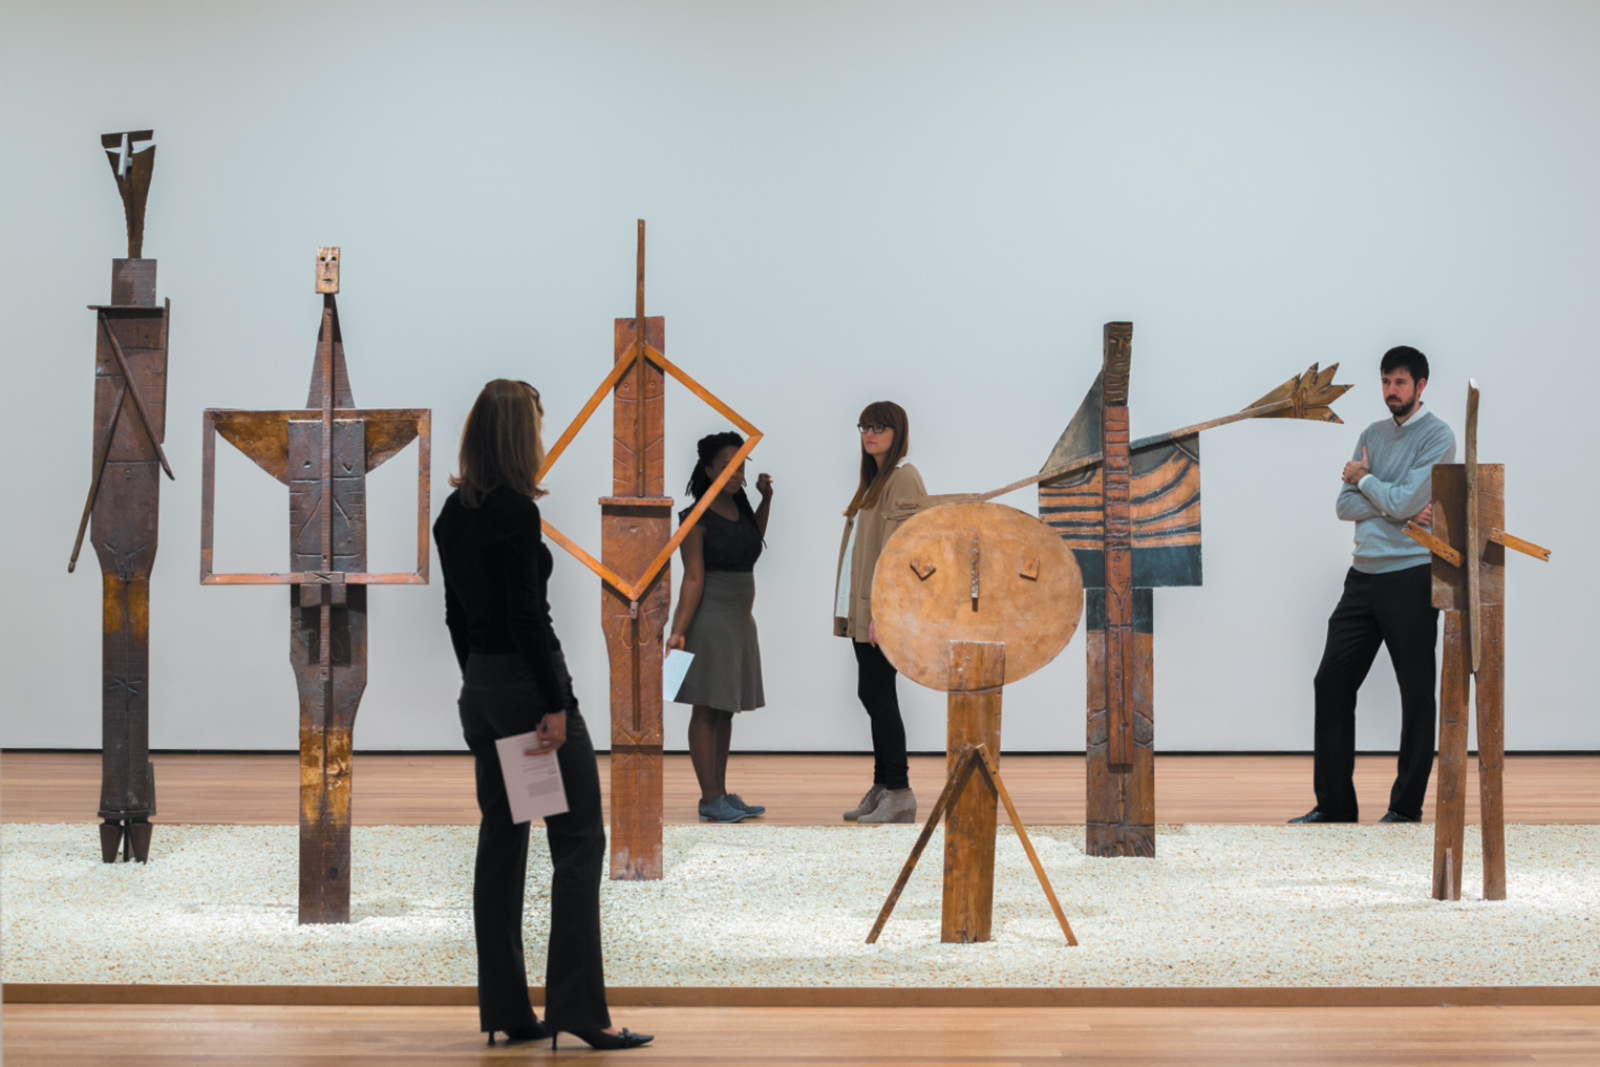 Works by Pablo Picasso in the exhibition 'Picasso Sculpture' at the Museum of Modern Art, New York City, 2015